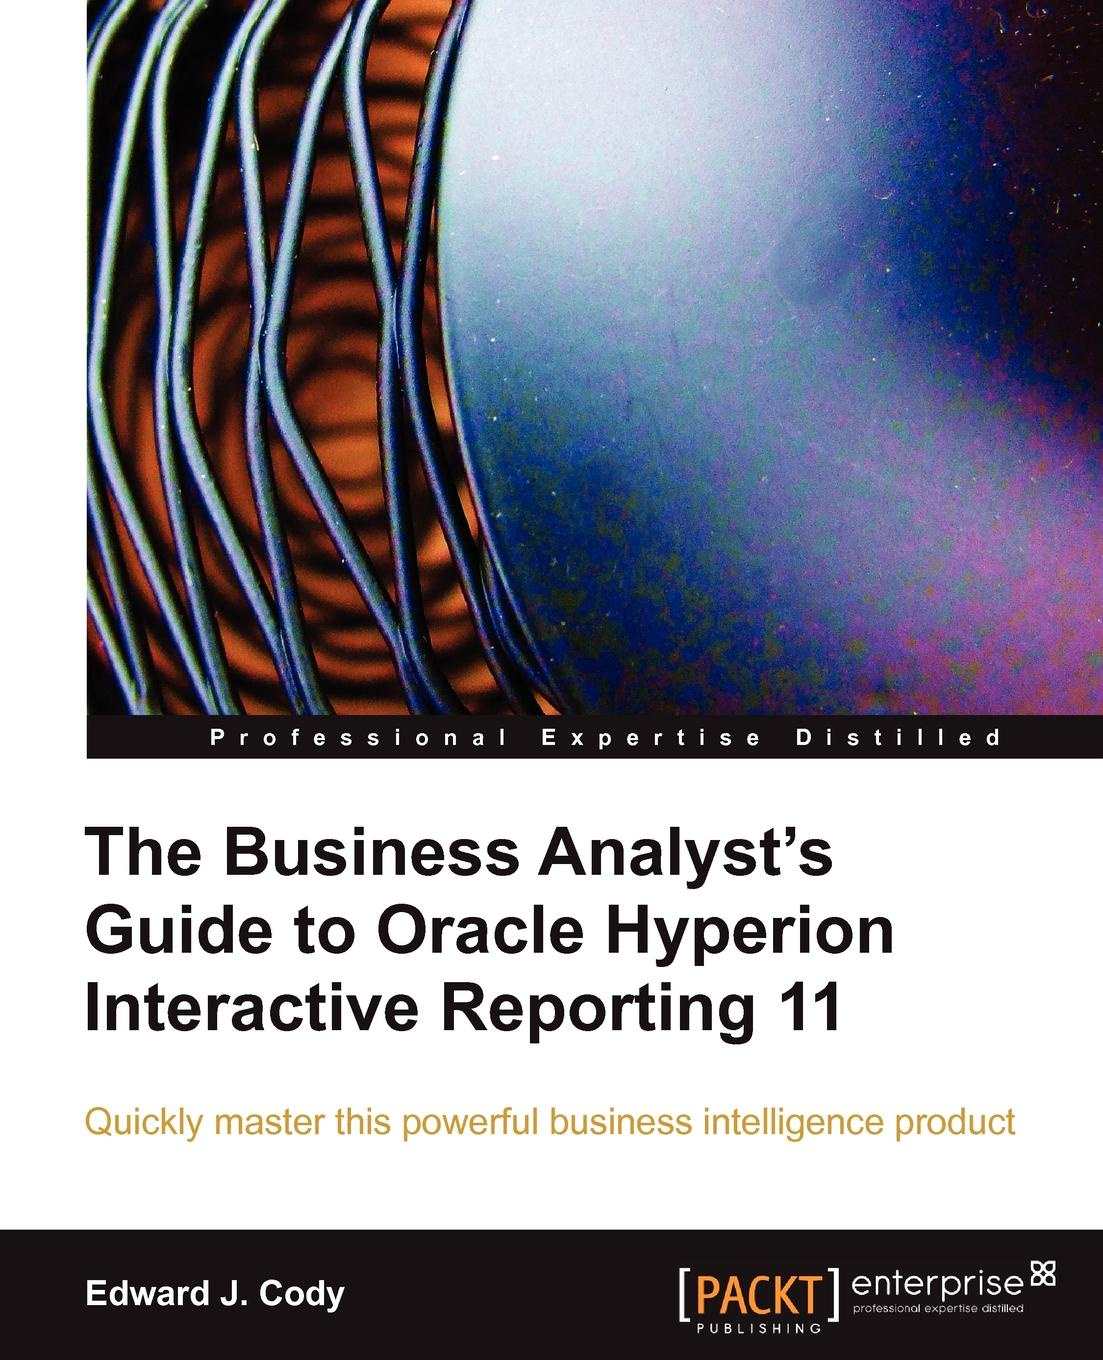 Edward J. Cody The Business Analyst's Guide to Oracle Hyperion Interactive Reporting 11 karen j carlson the new harvard guide to womens s health